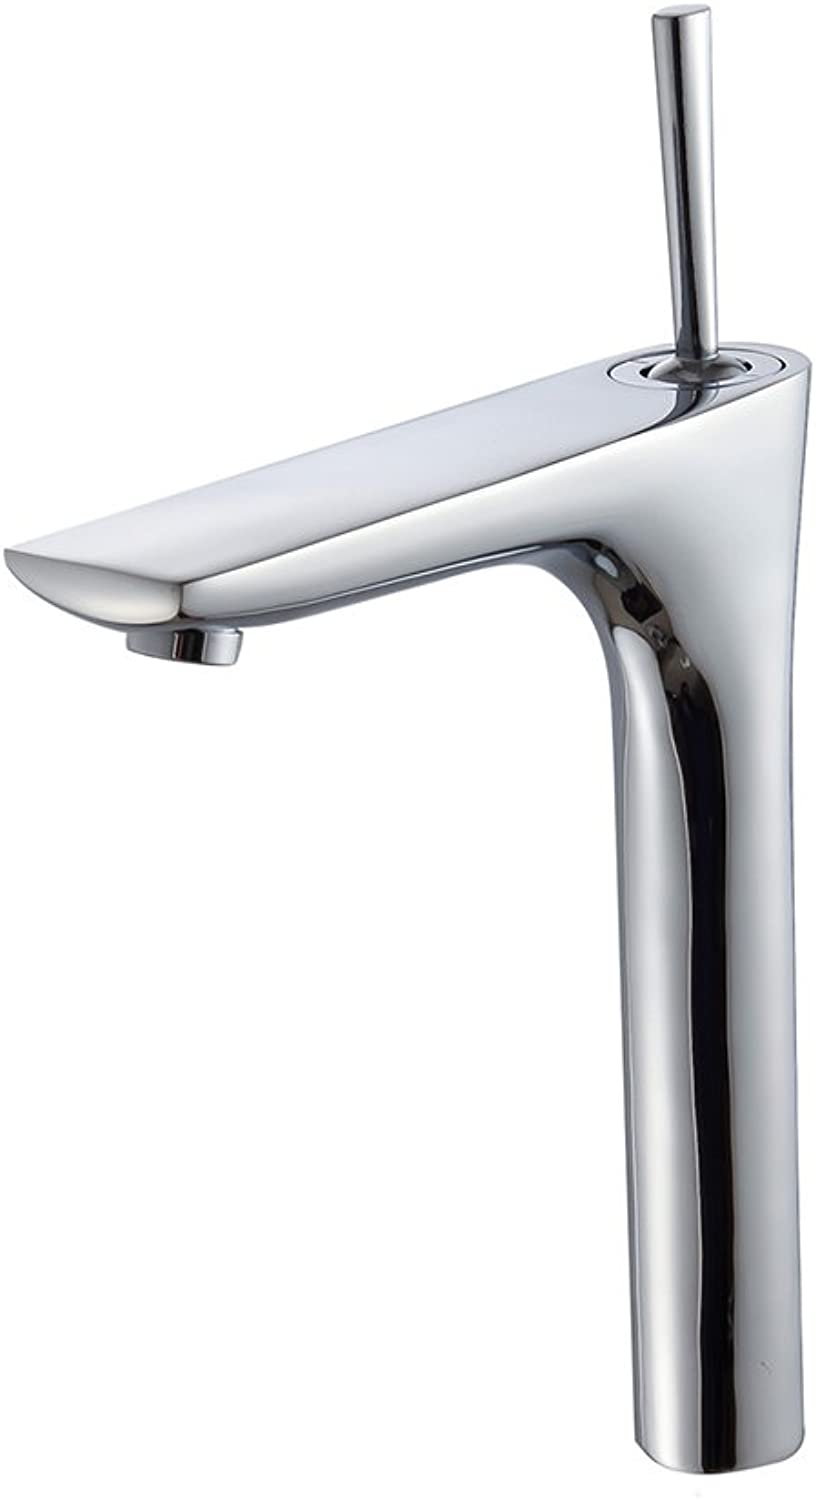 Bathroom Sink Taps YIXINY S-5052 Creative Washbasin Taps Brass Material,Cold And Hot Water, Water Saving,Bathroom Sink Mixer Taps,Bathroom Taps